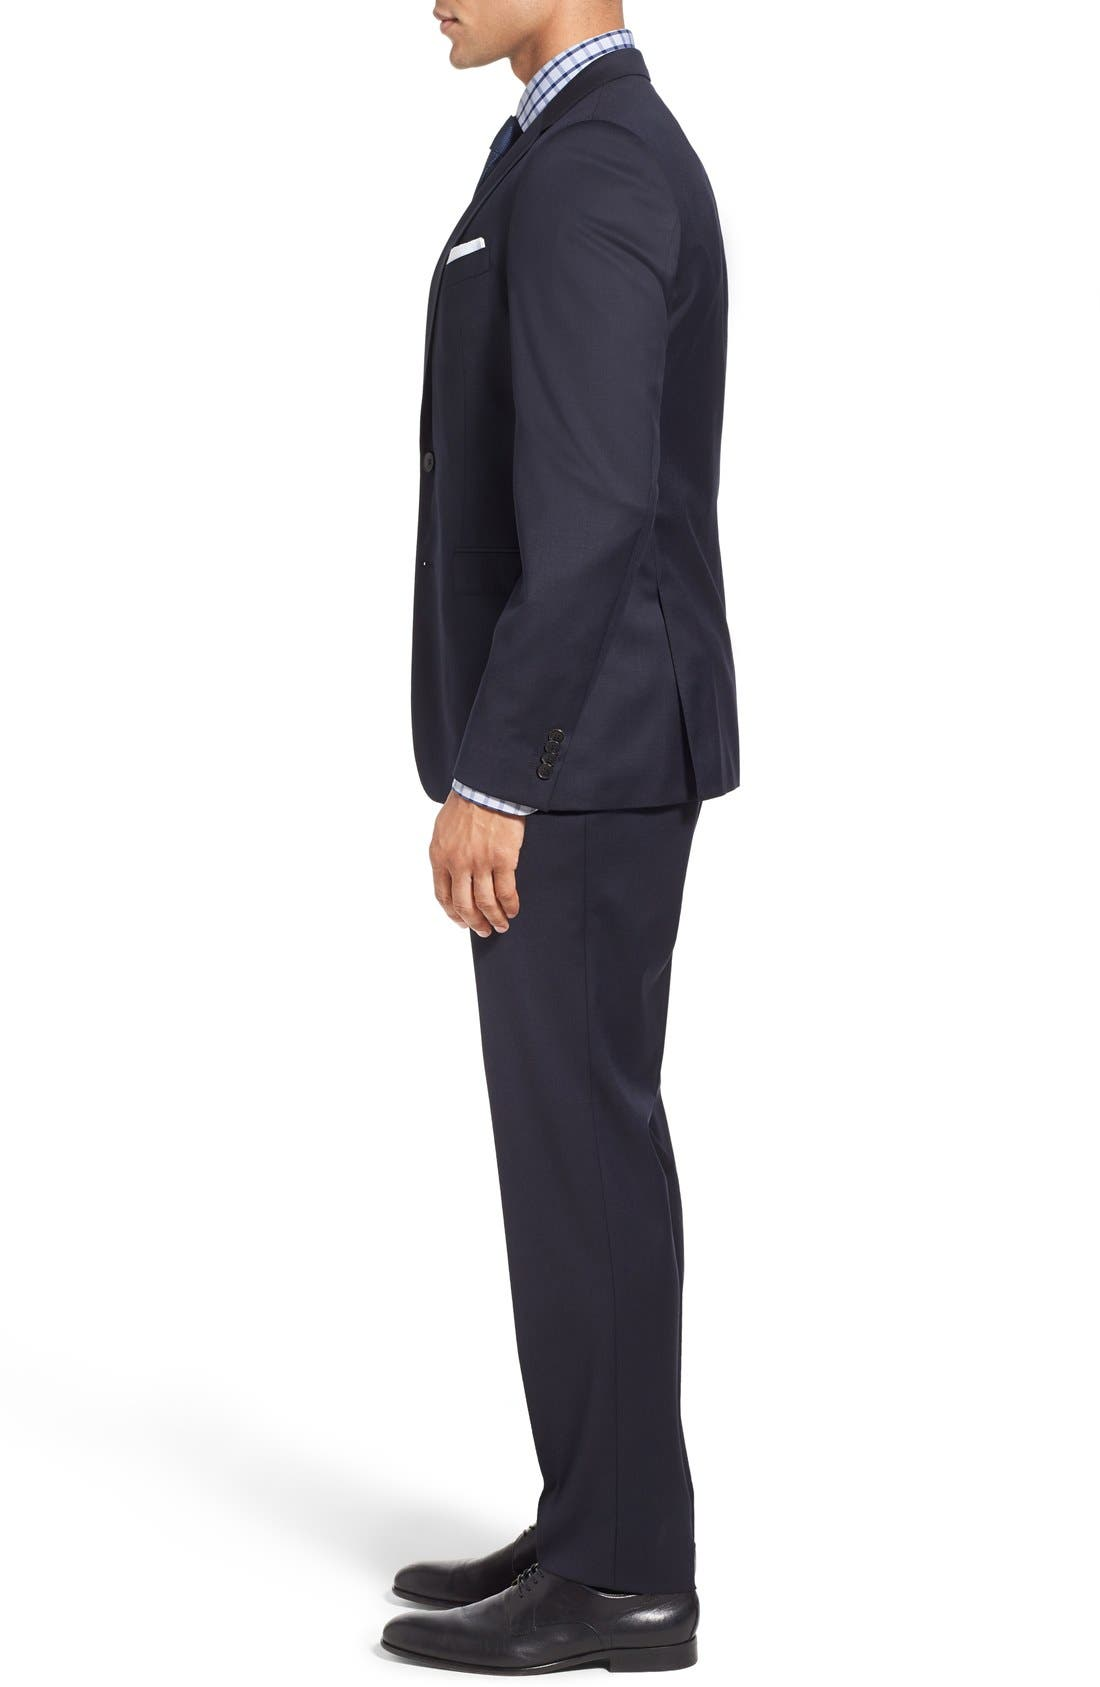 Ryan/Win Extra Trim Fit Solid Wool Suit,                             Alternate thumbnail 11, color,                             DARK BLUE